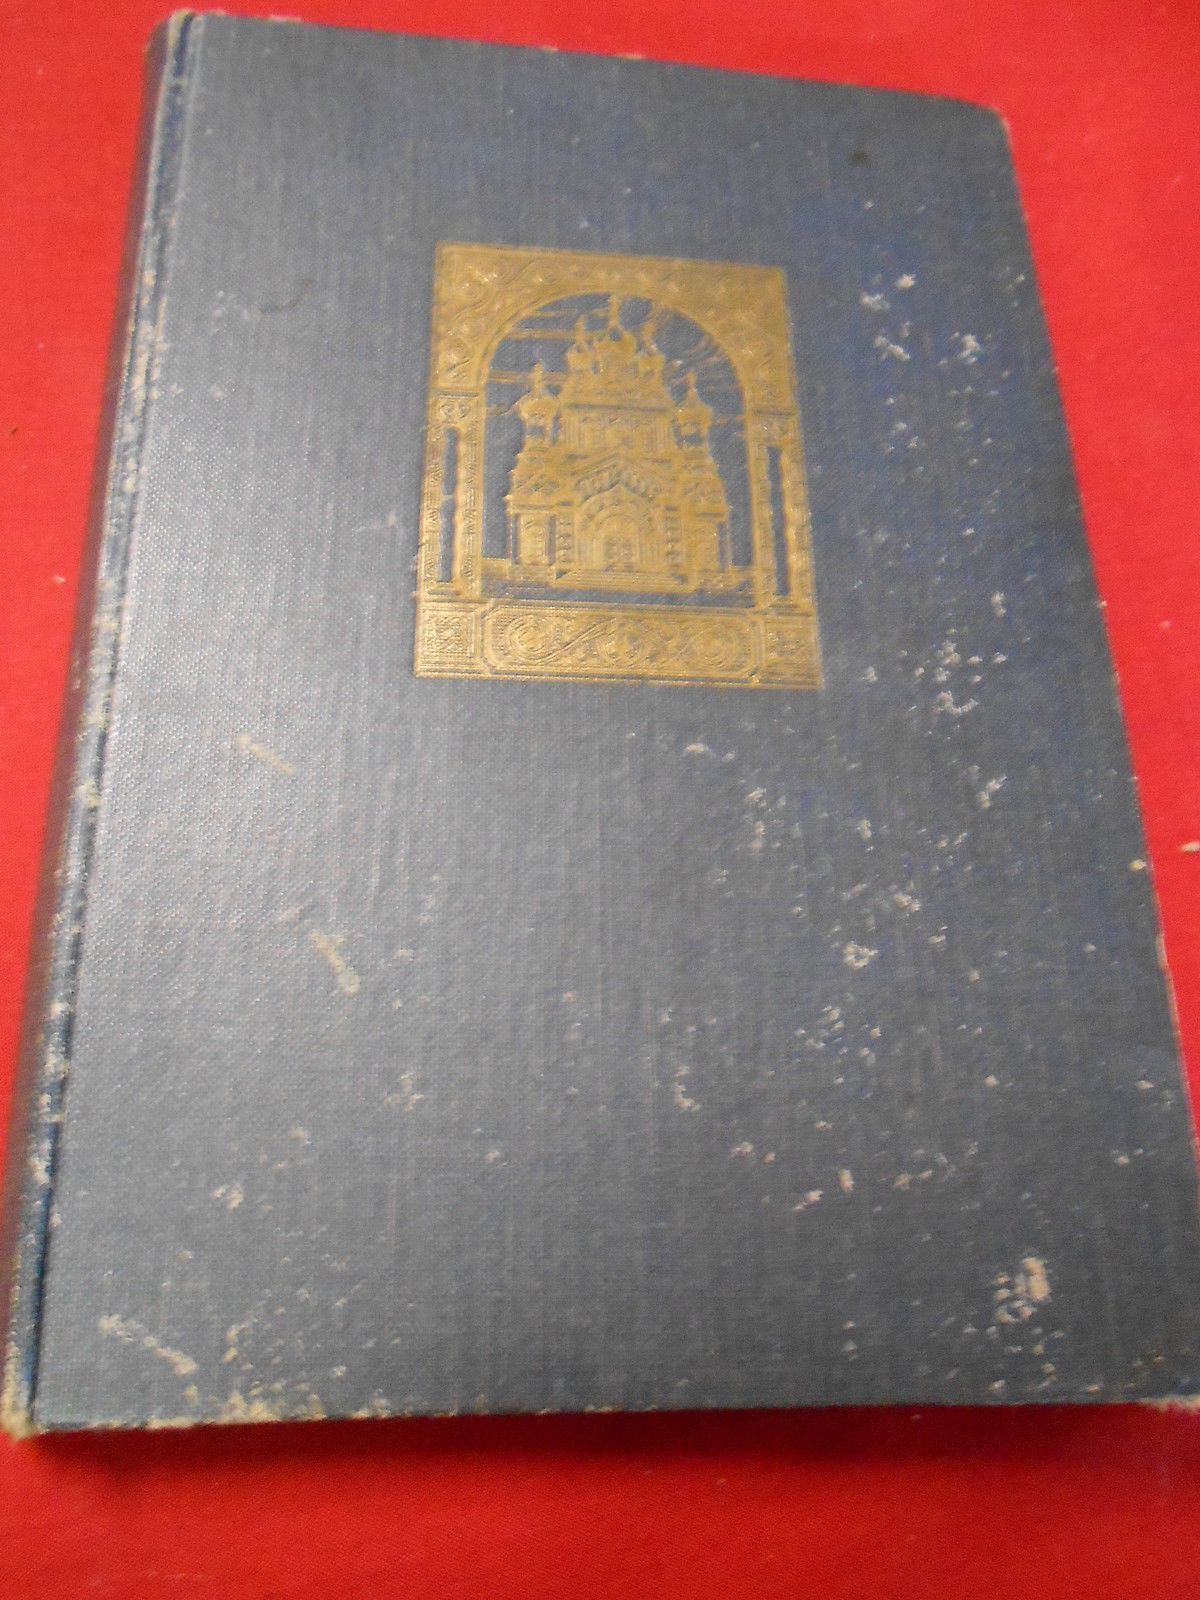 Antique Book-1923 THE LIGHT OF RUSSIA  Donald A. Lowrie w/ Autograph Inscription